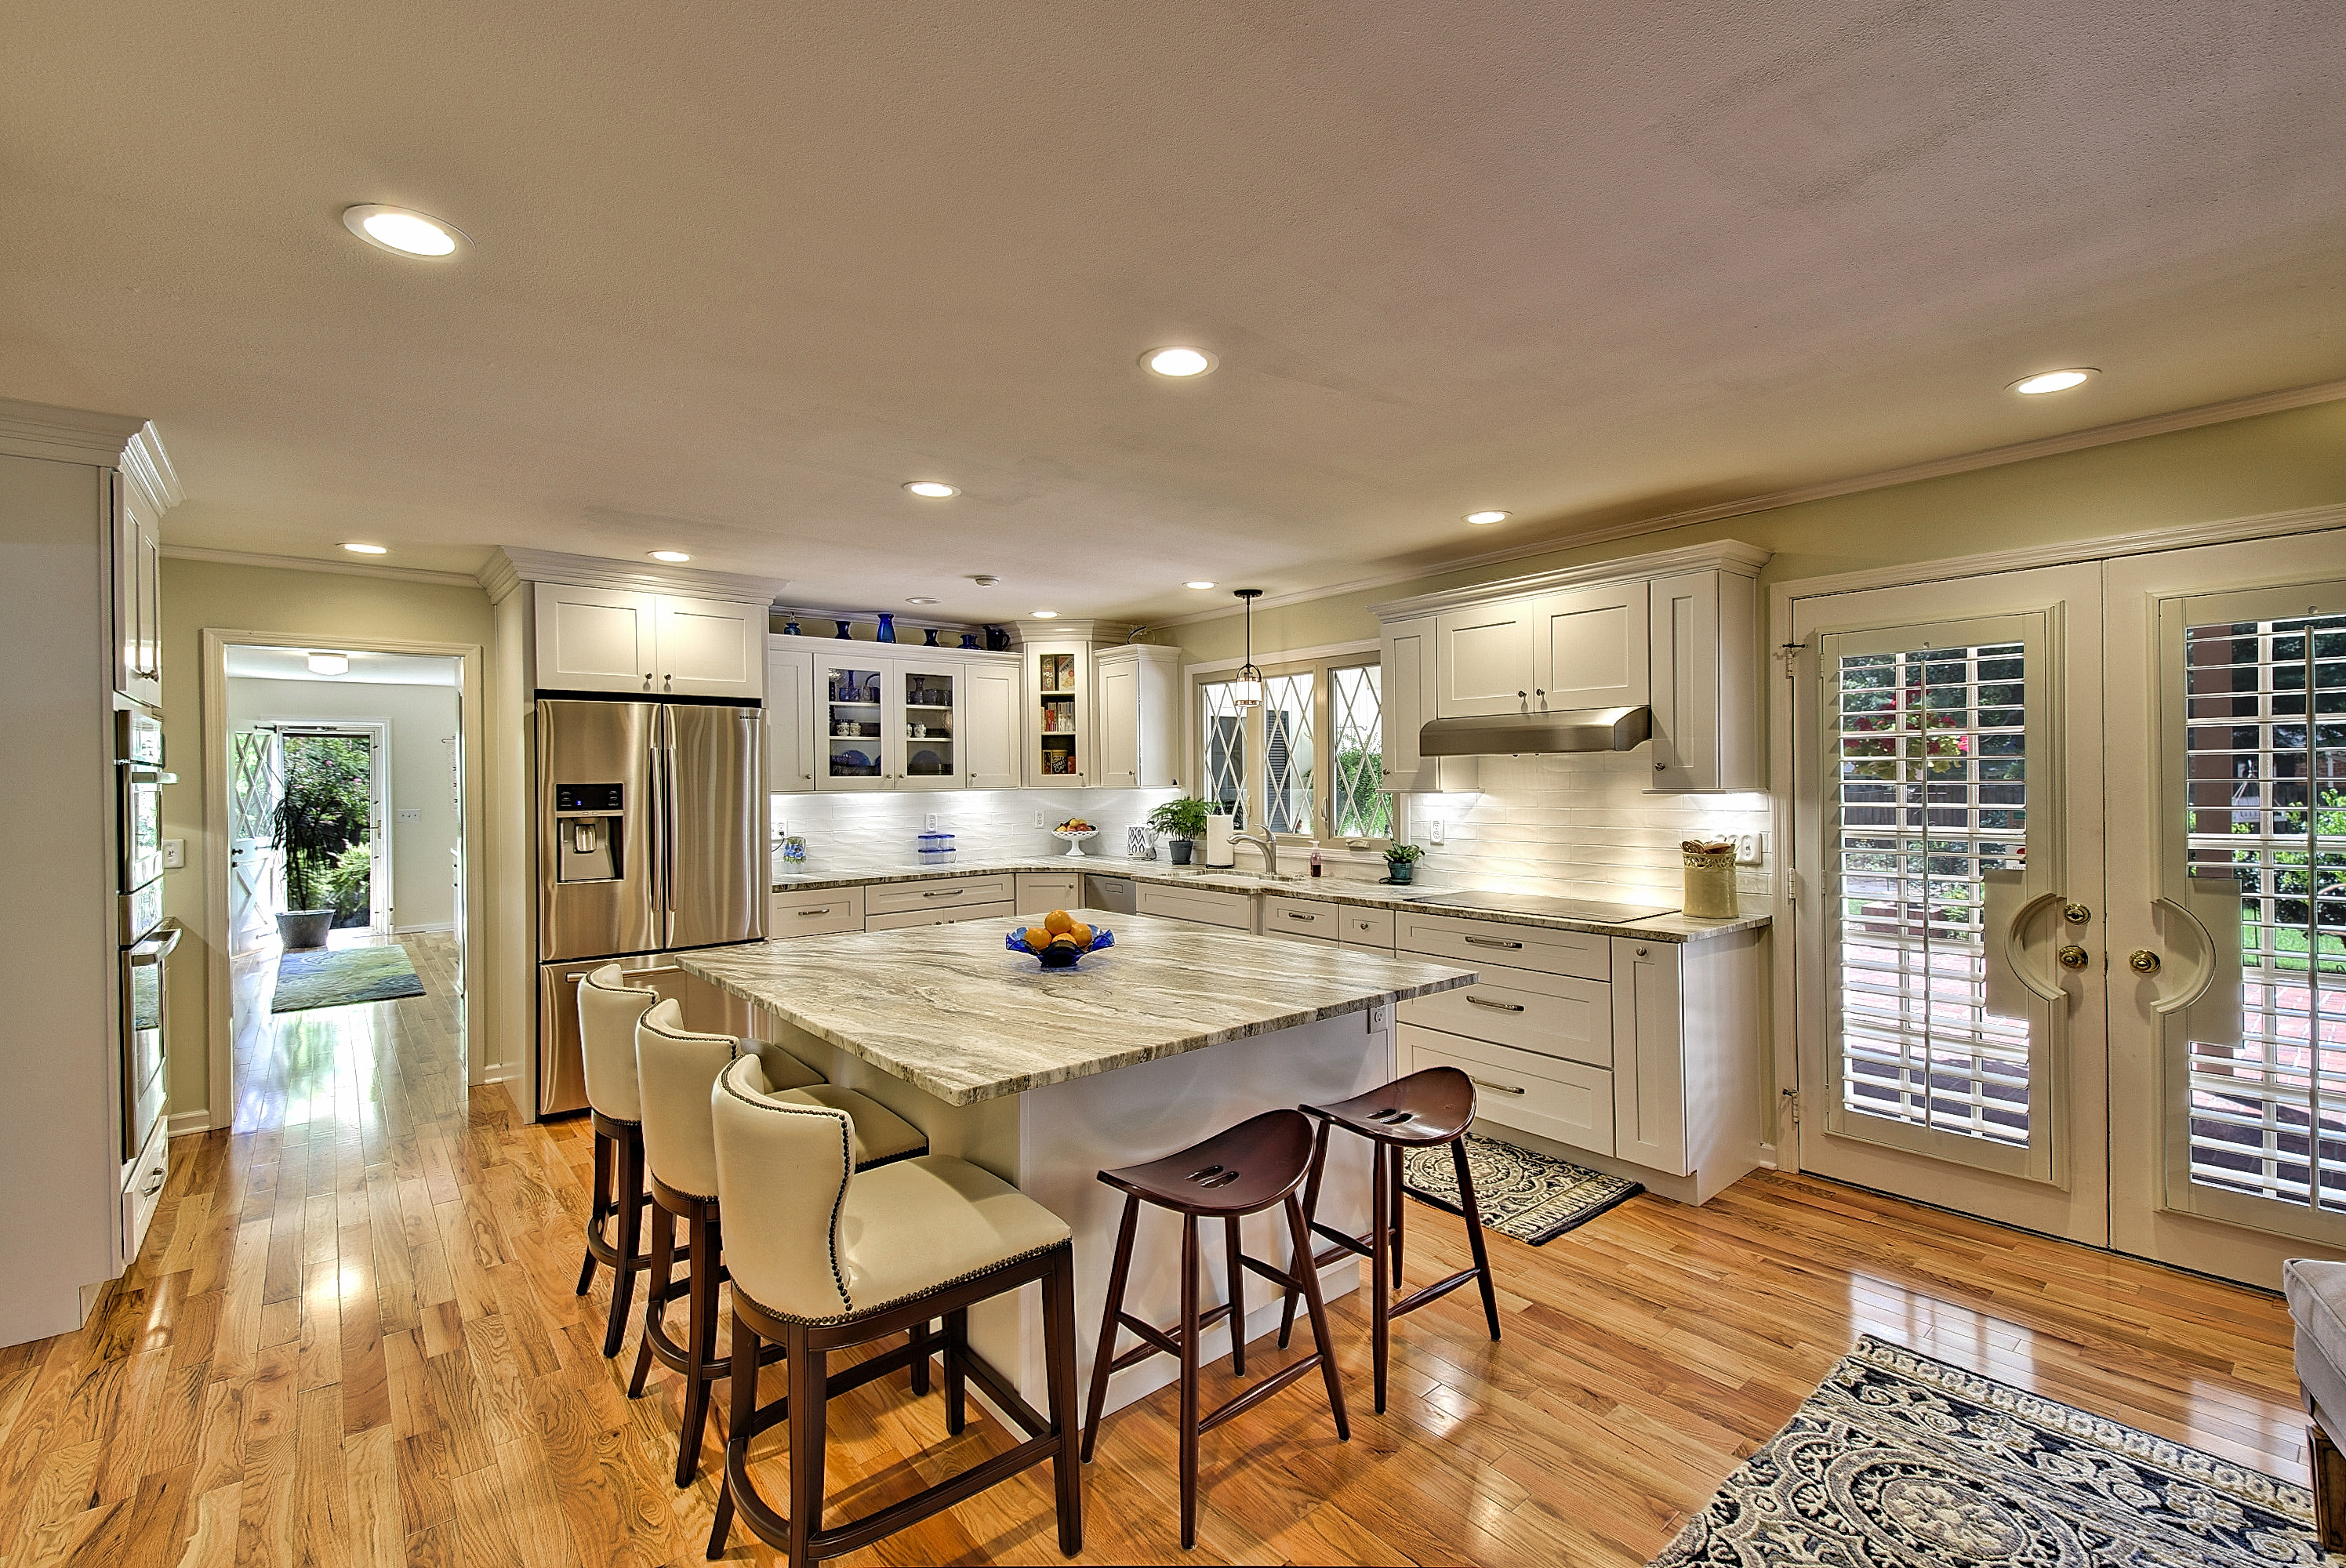 Kitchen Design Johnson City Photo Gallery Kitchens By Design